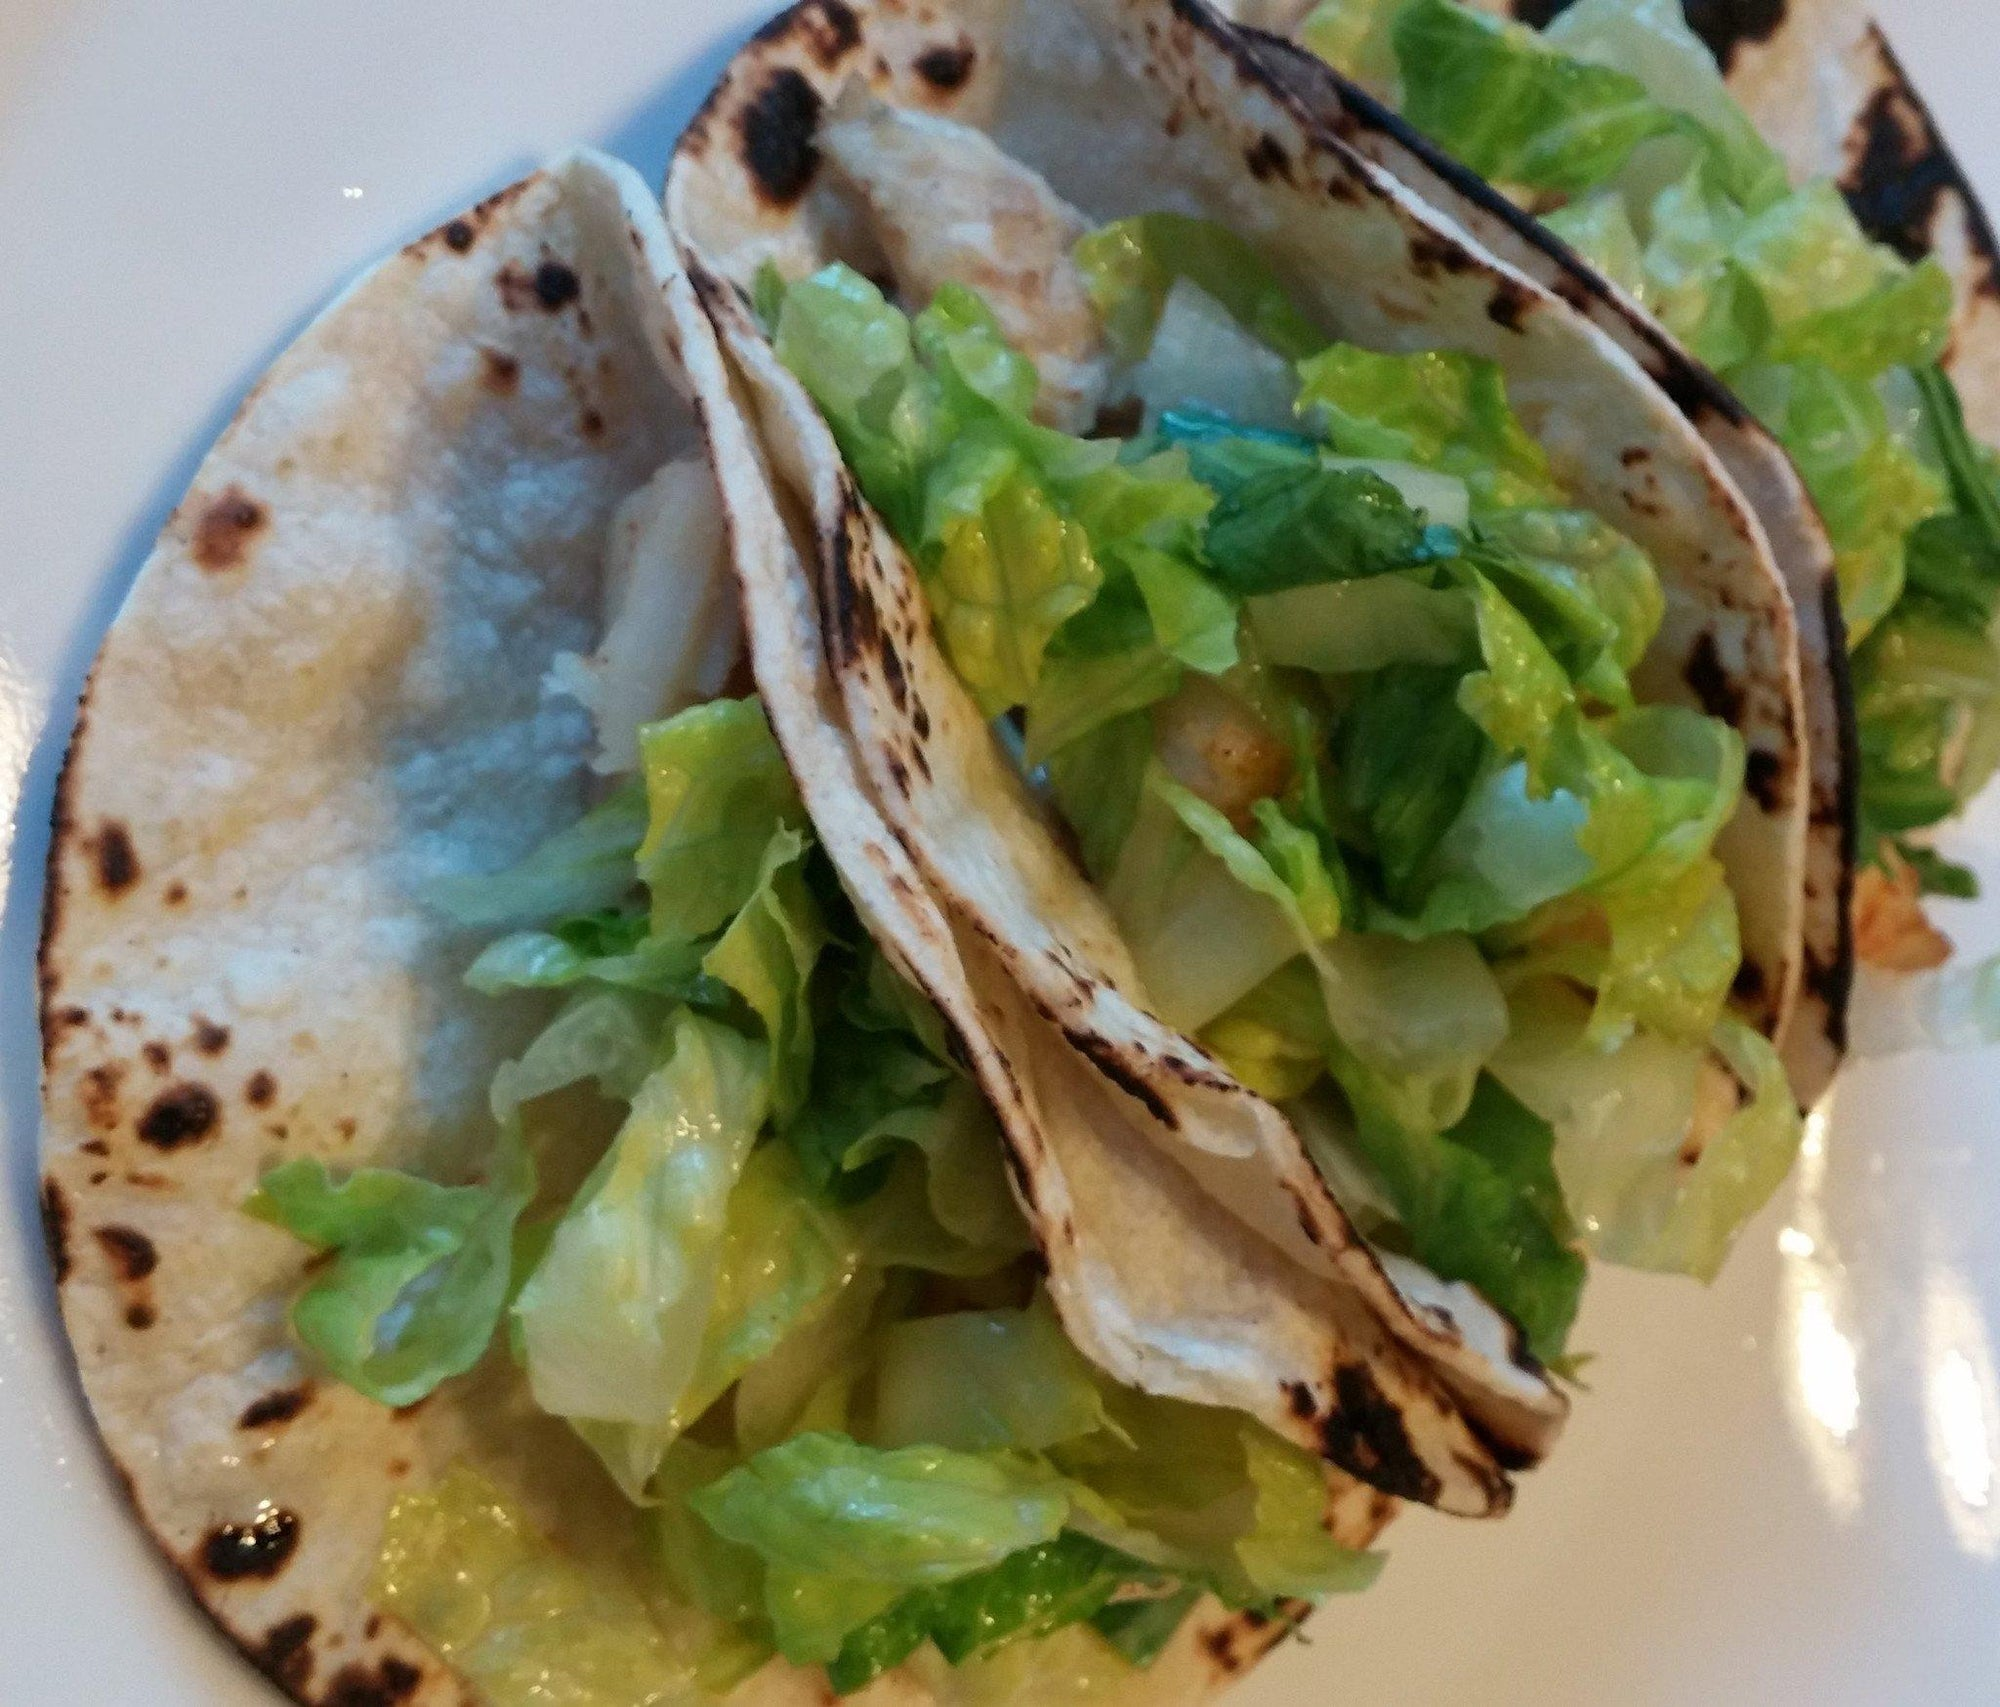 Chugwater Chili Fish Tacos